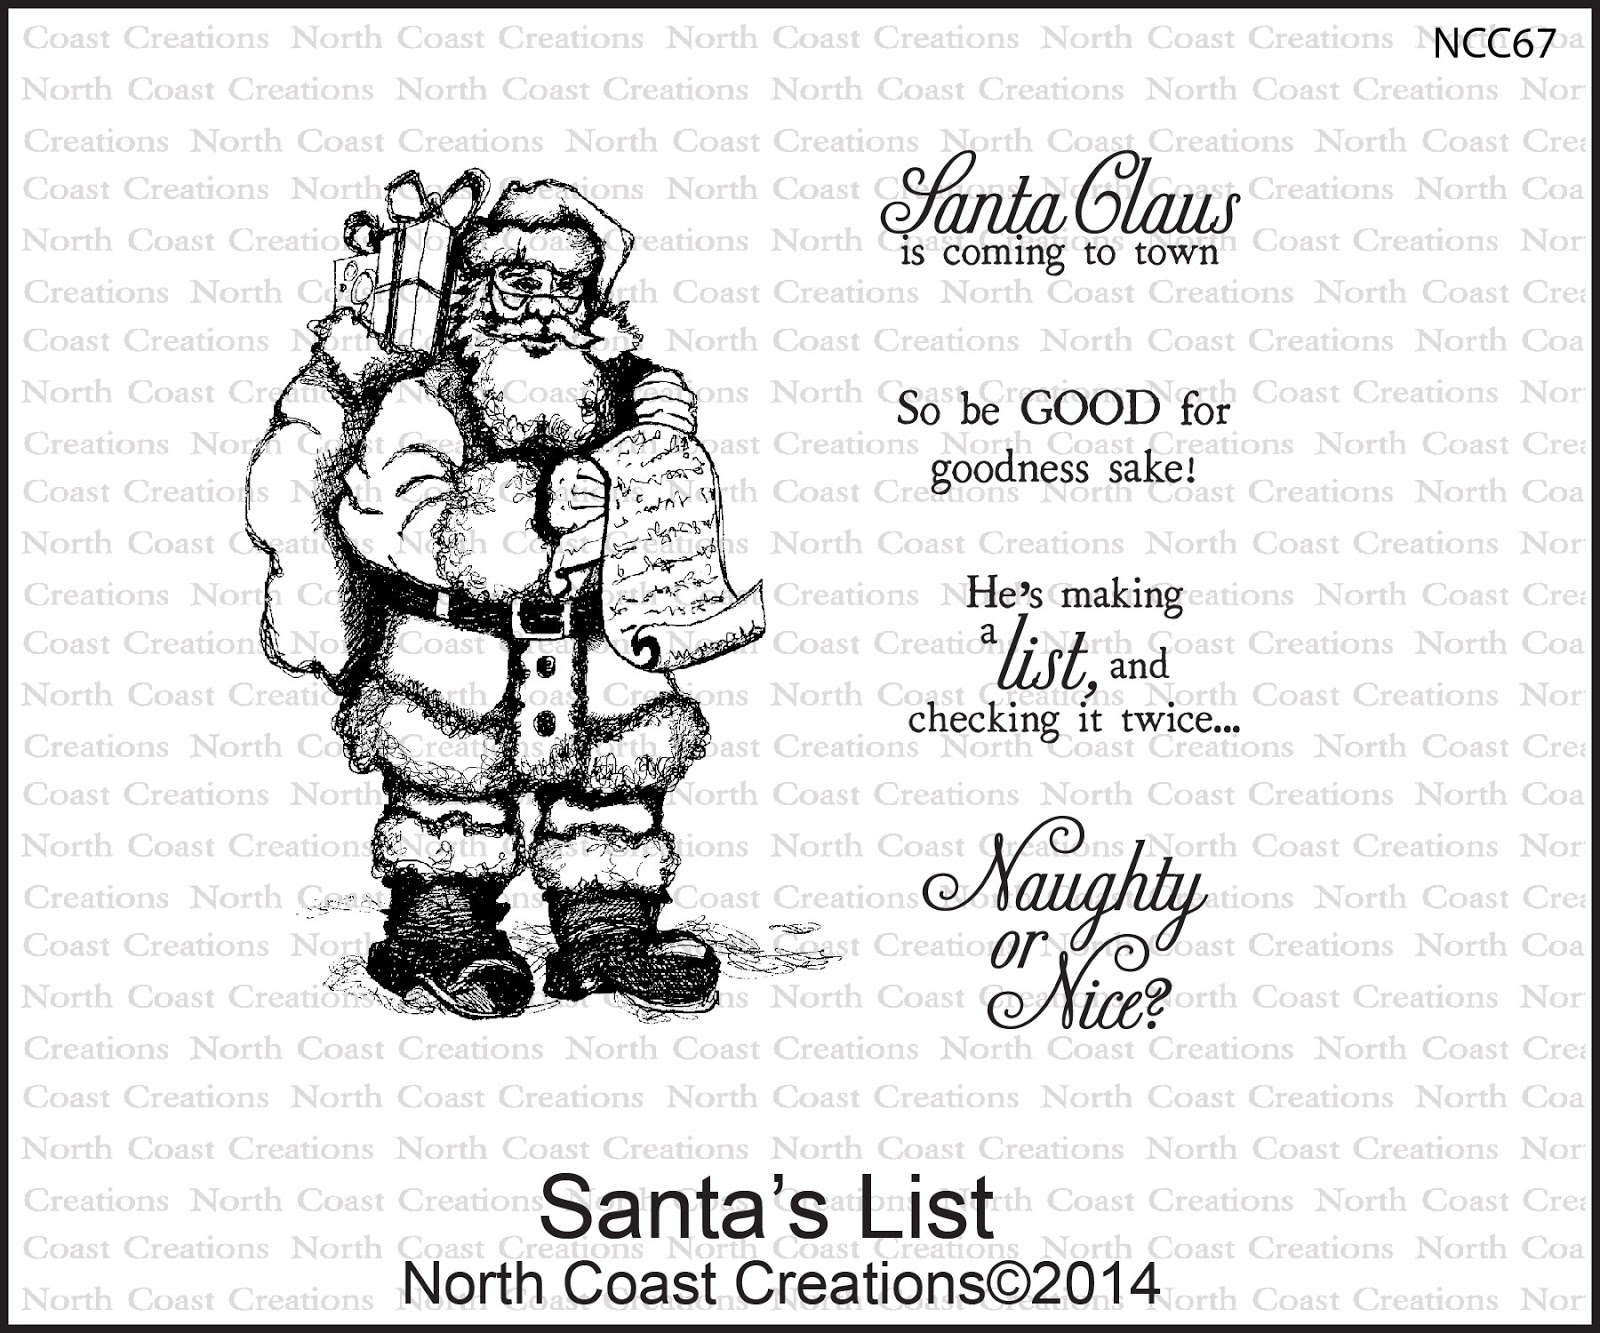 Stamps - North Coast Creations Santa's List